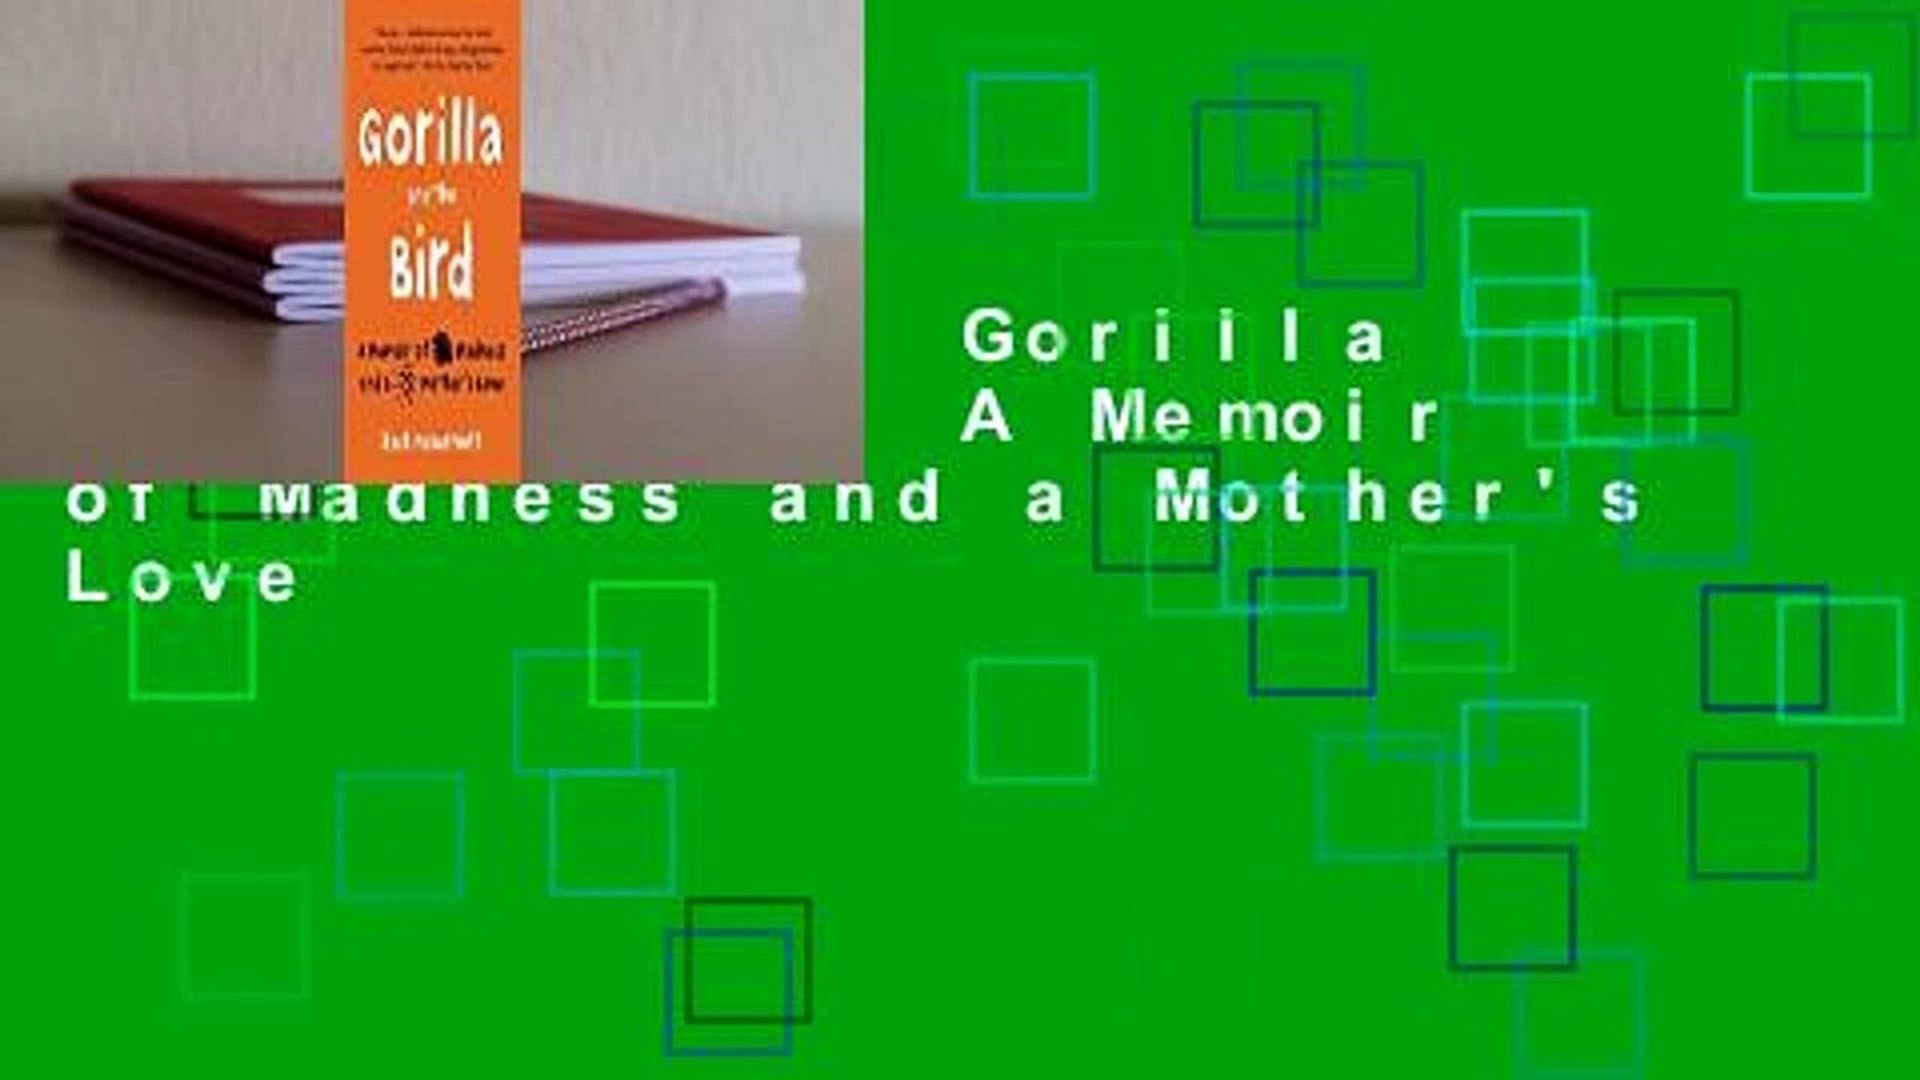 [GIFT IDEAS] Gorilla and the Bird: A Memoir of Madness and a Mother's Love